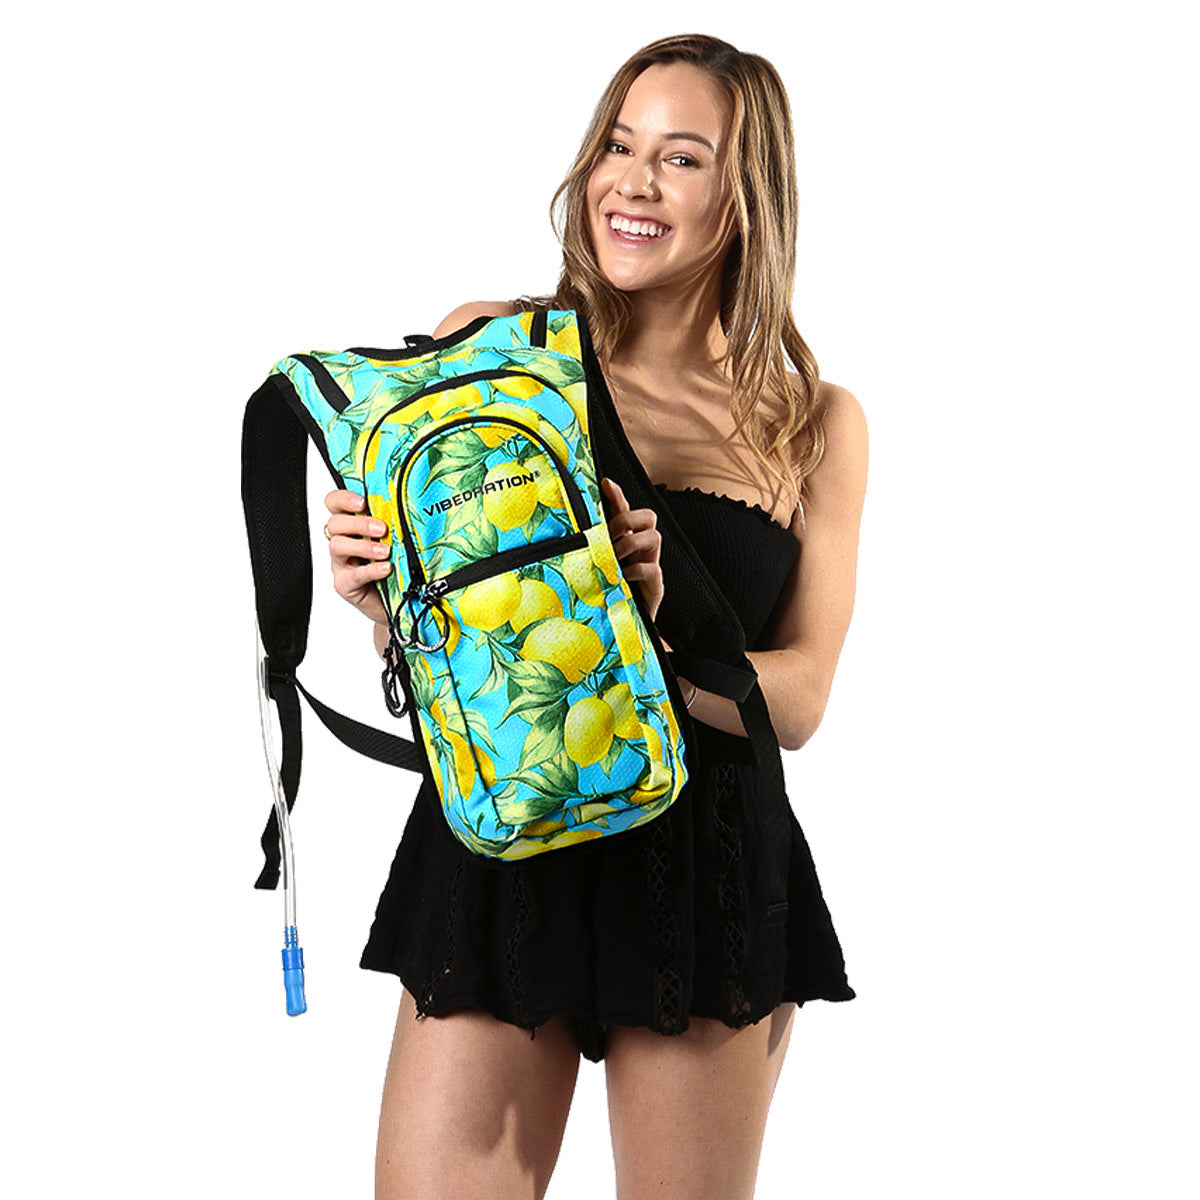 Lemon Squeeze Hydration Pack for Music Festivals